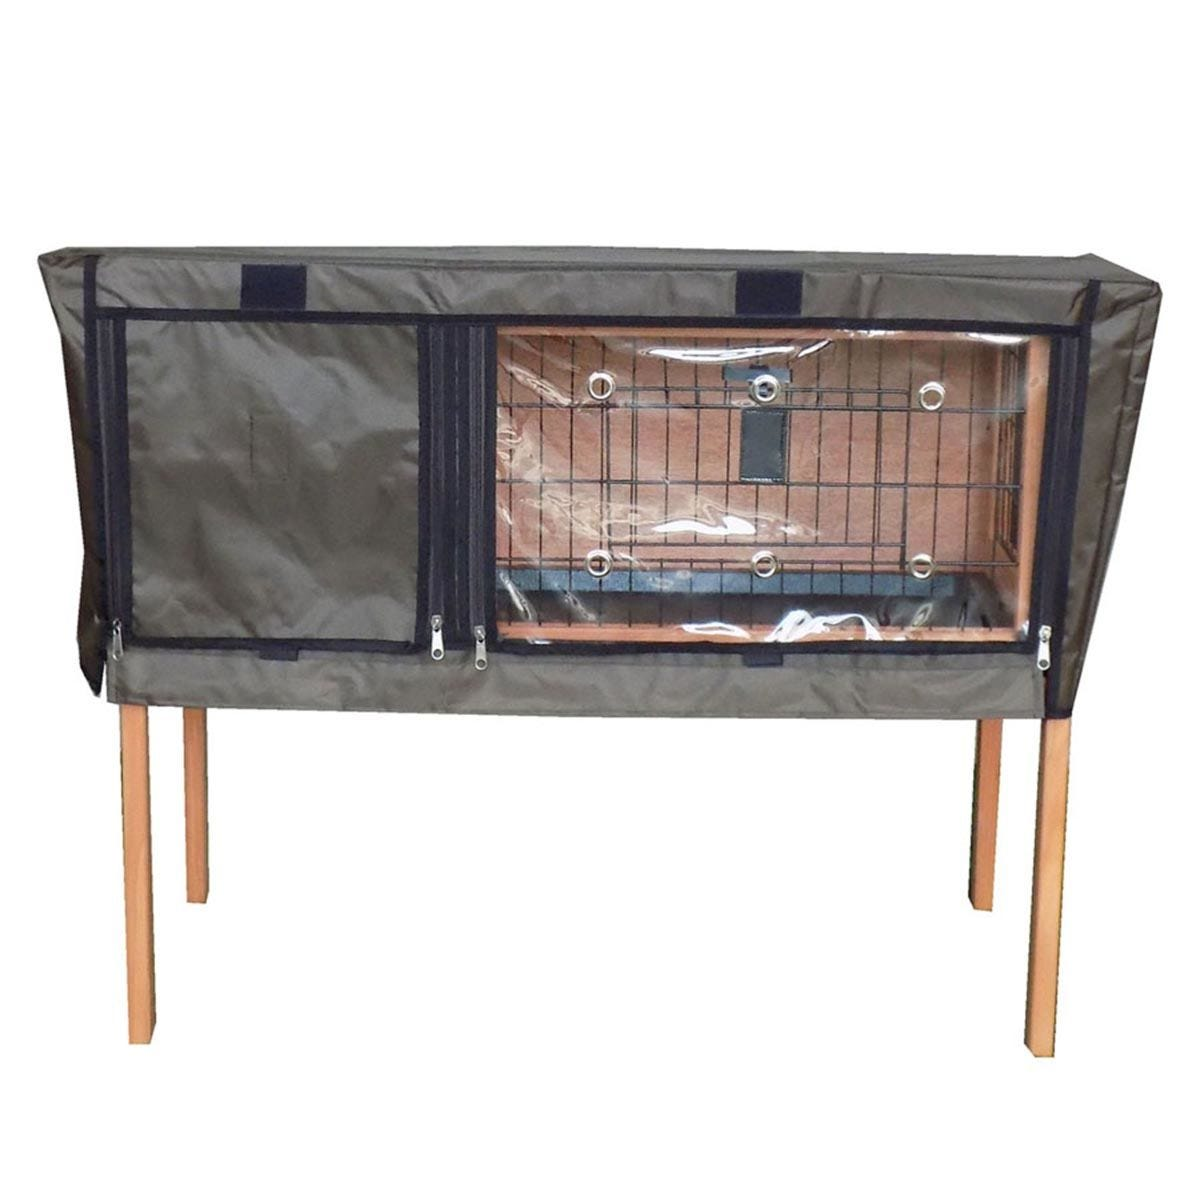 Charles Bentley Small Pet Hutch Cover